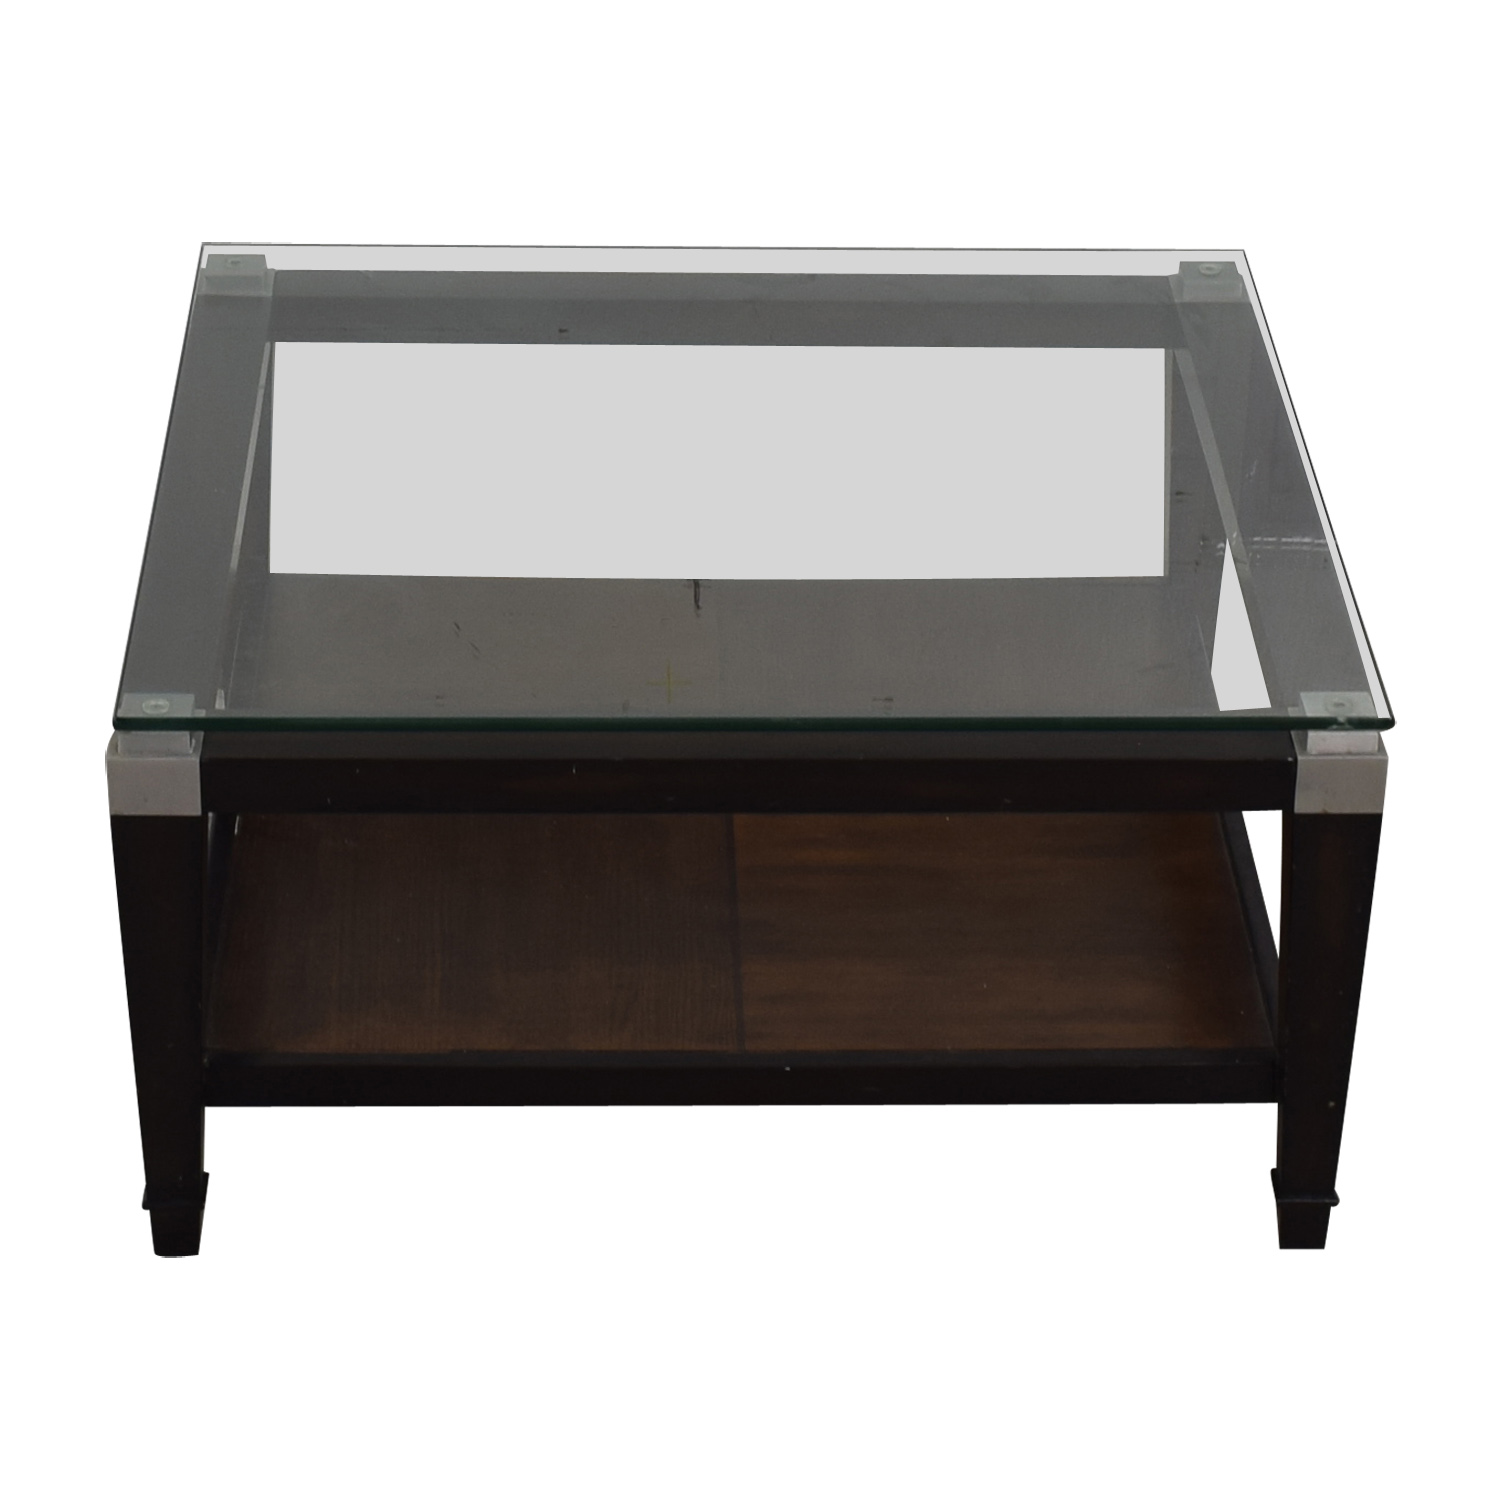 Square Glass and Wood Coffee Table Brown